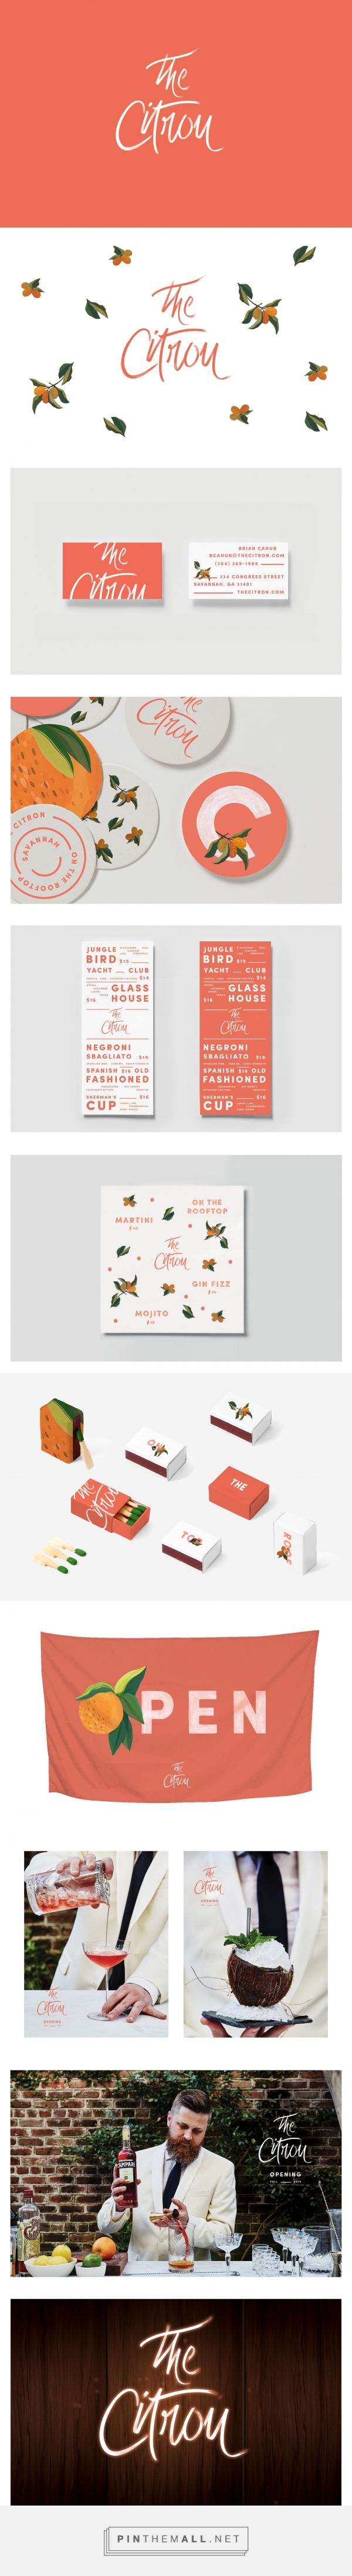 The Citron Branding / by Maud Passini